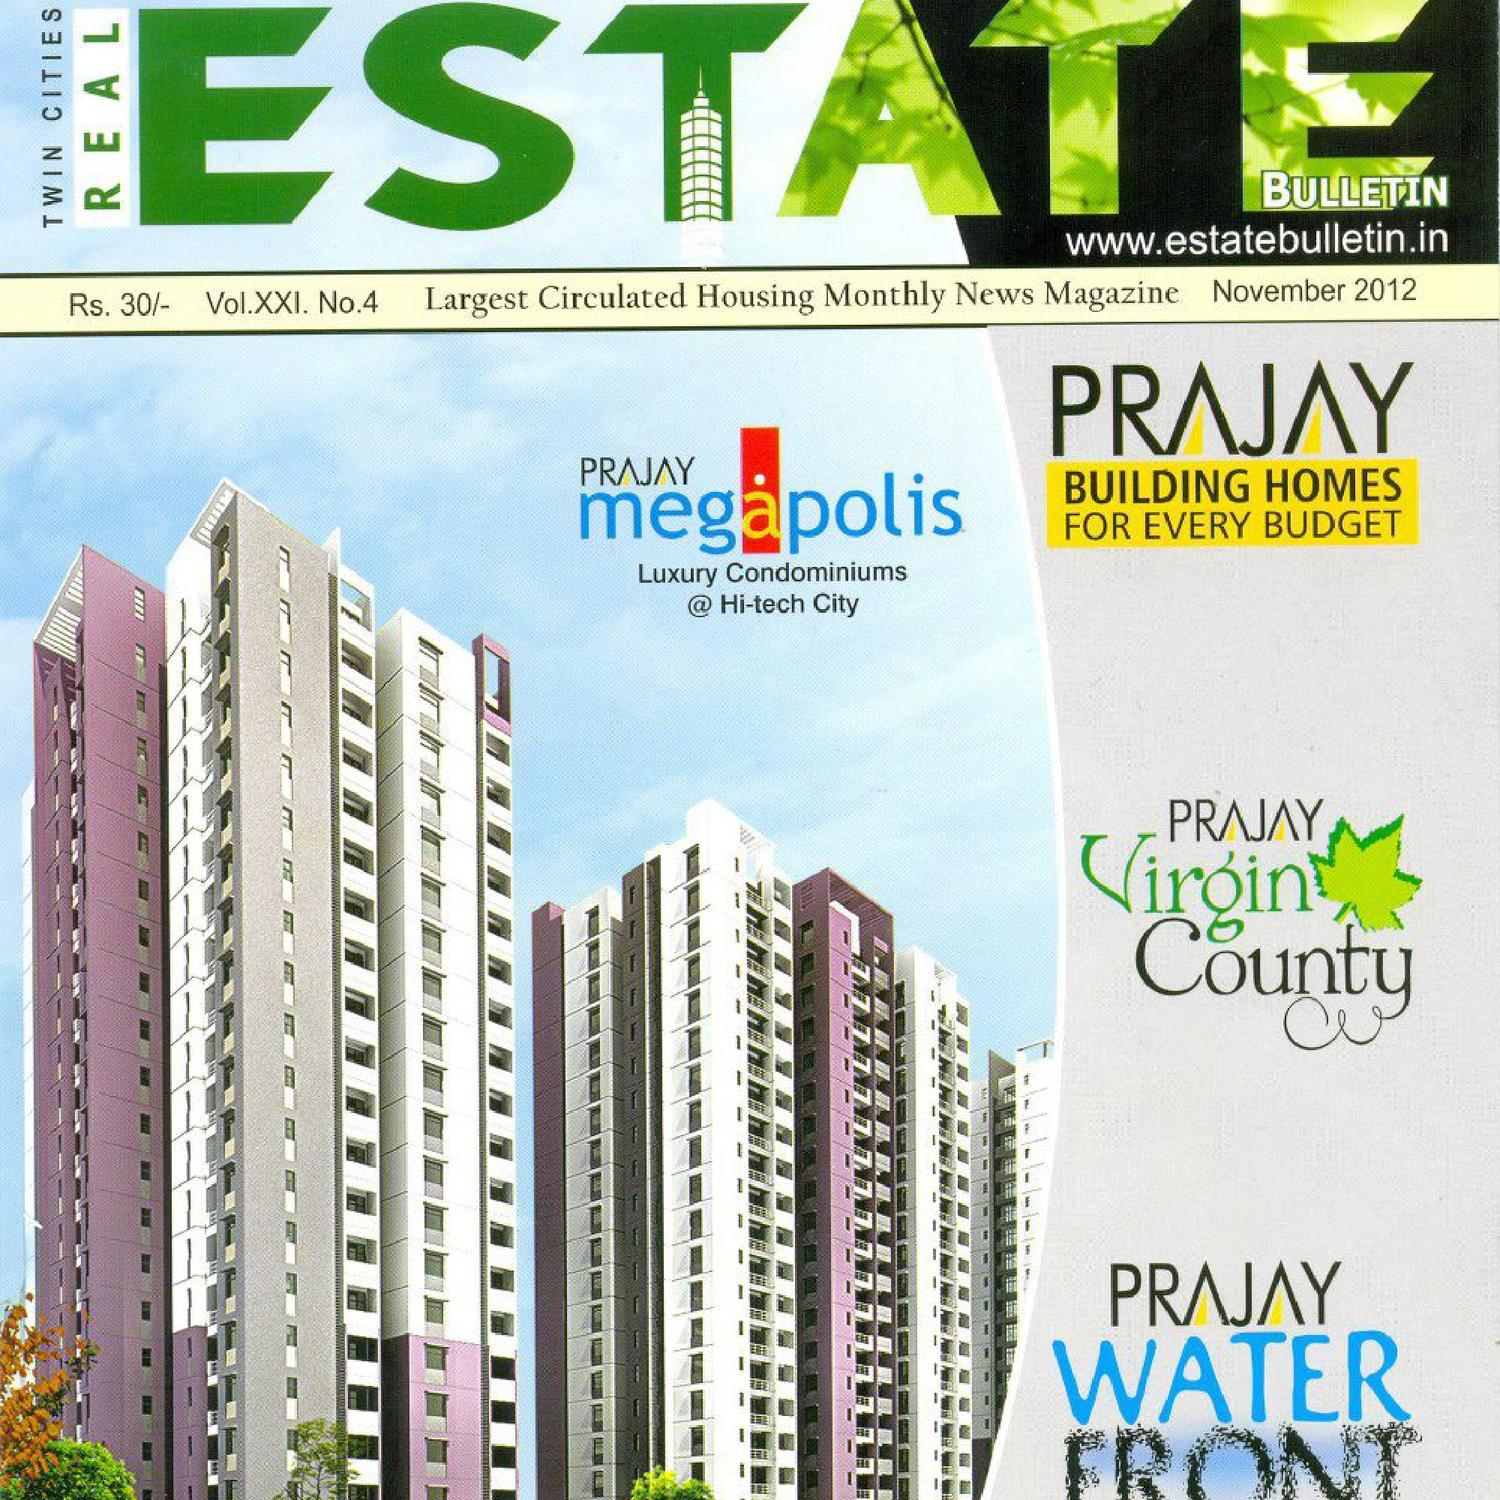 November 2012 by real estate bulletin issuu for V muraleedharan family